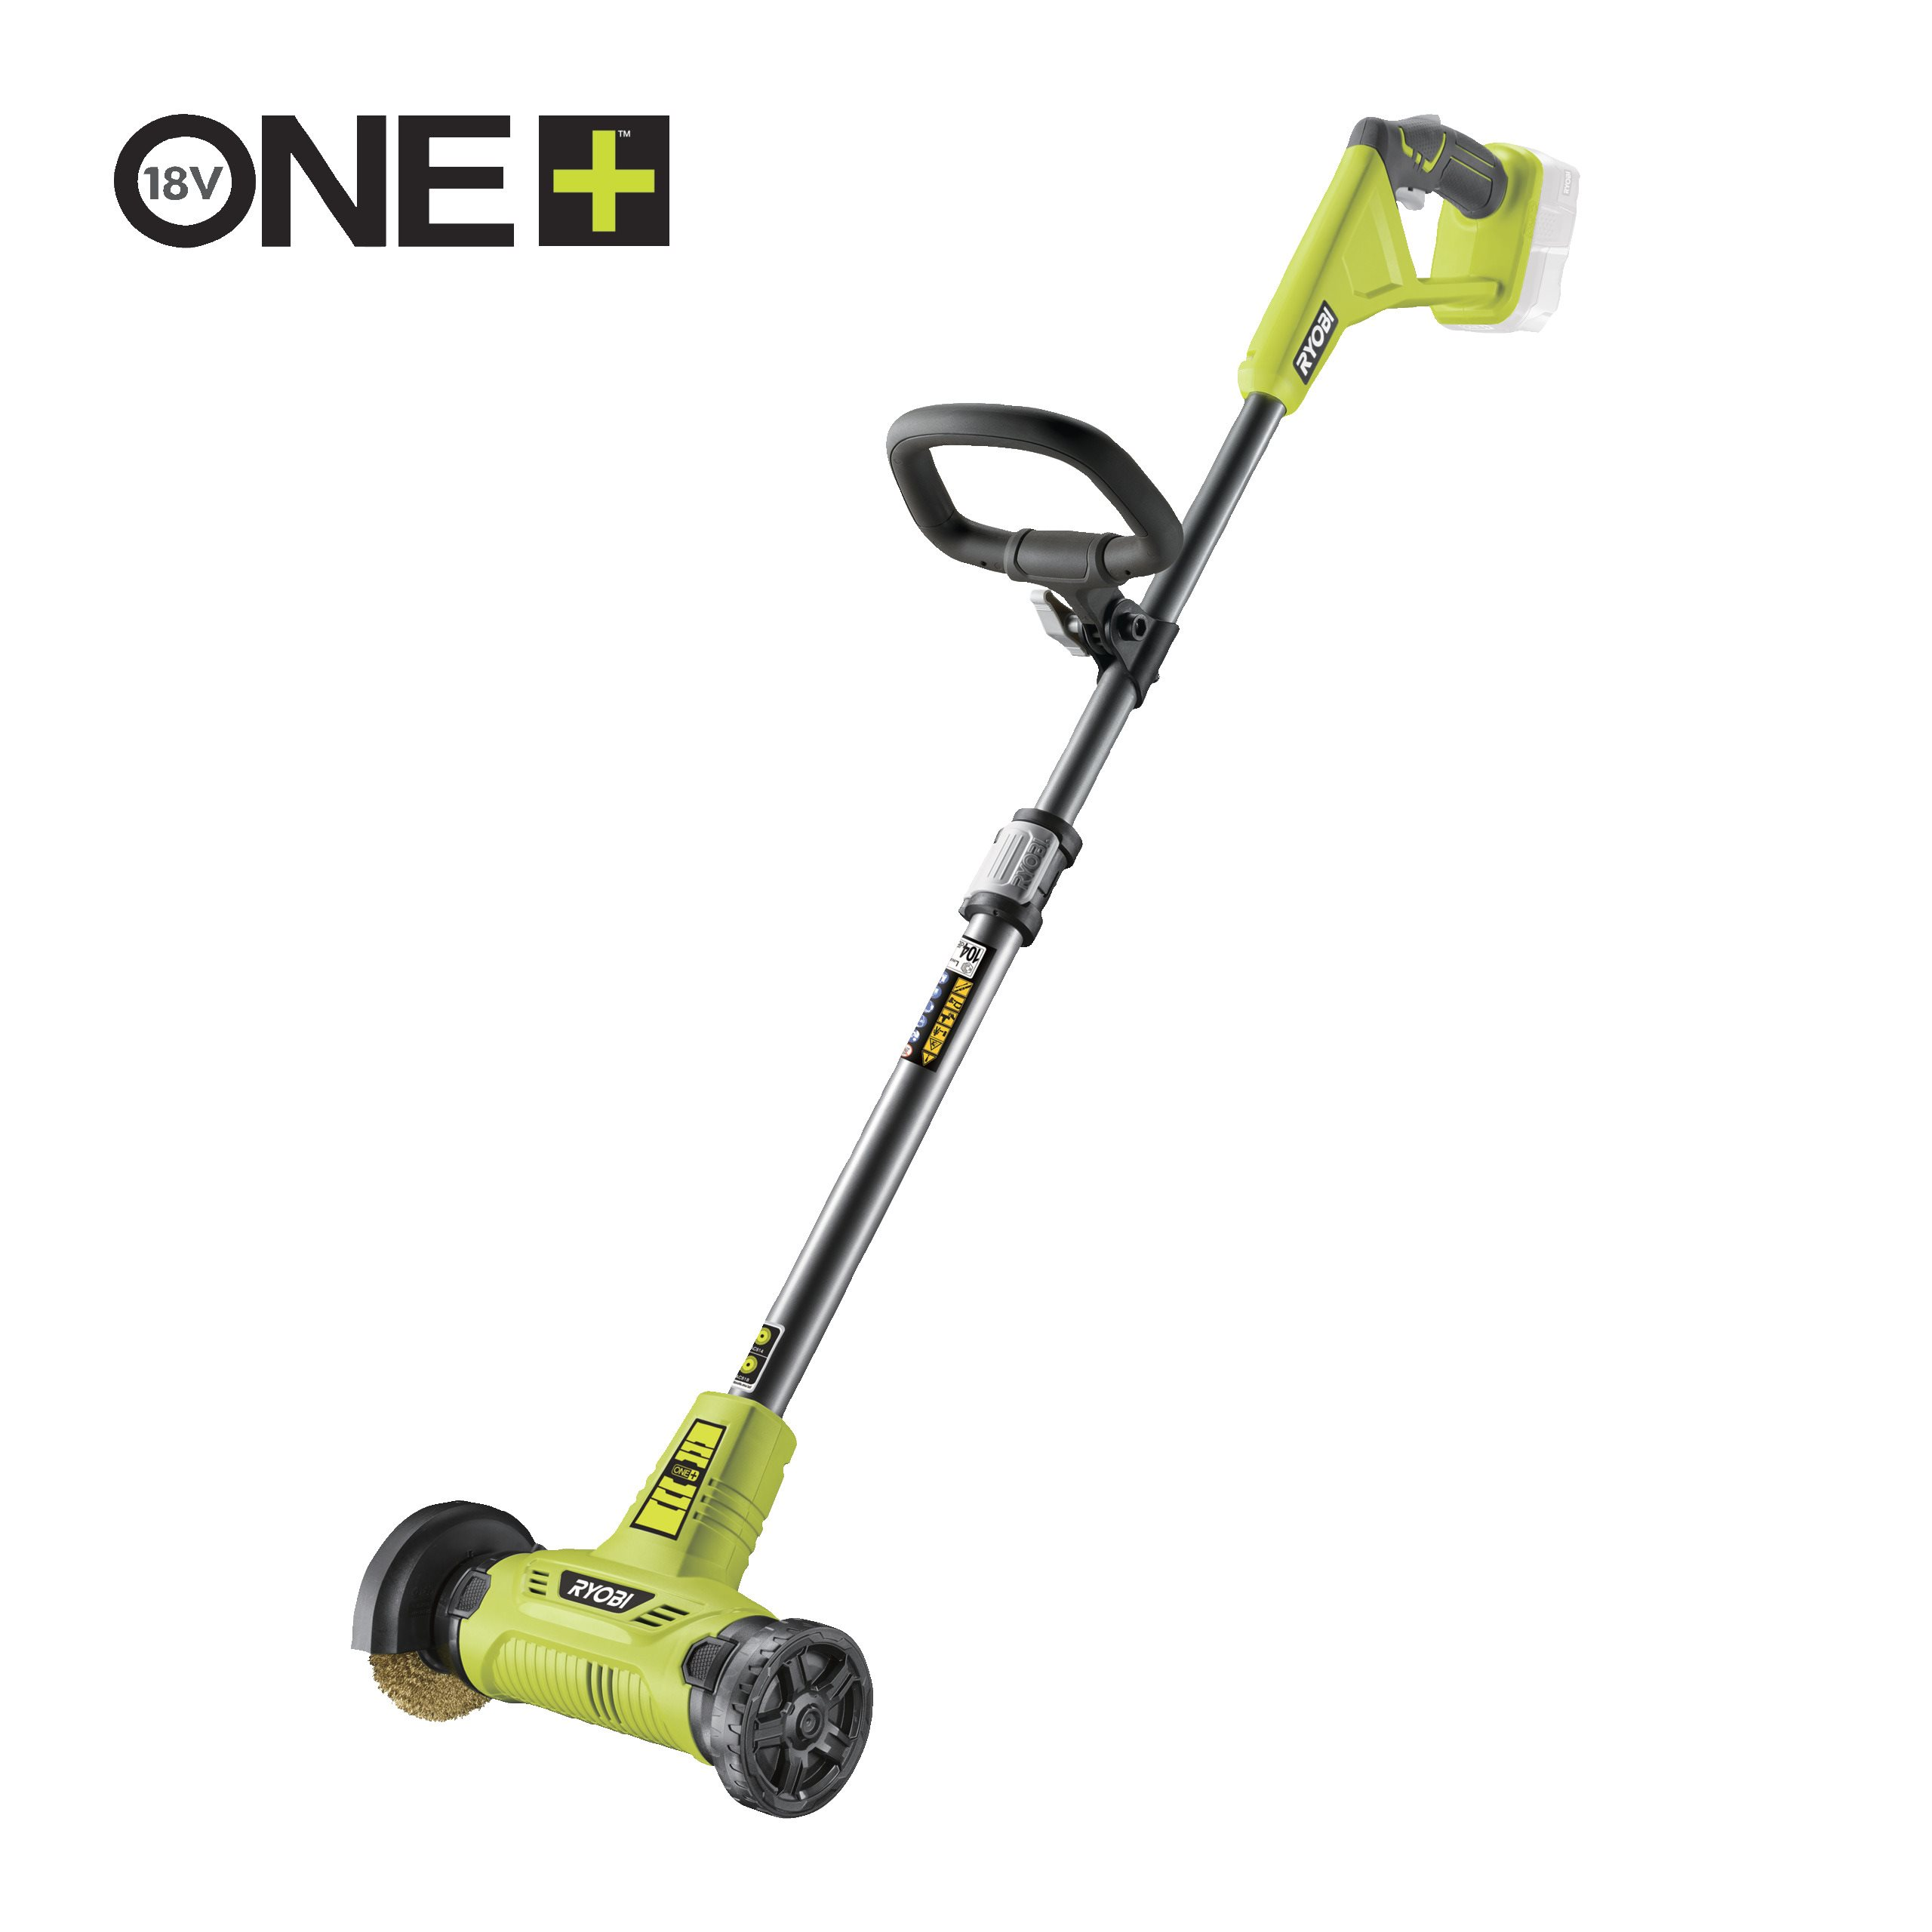 18V Cordless Patio Cleaner with Wire Brush